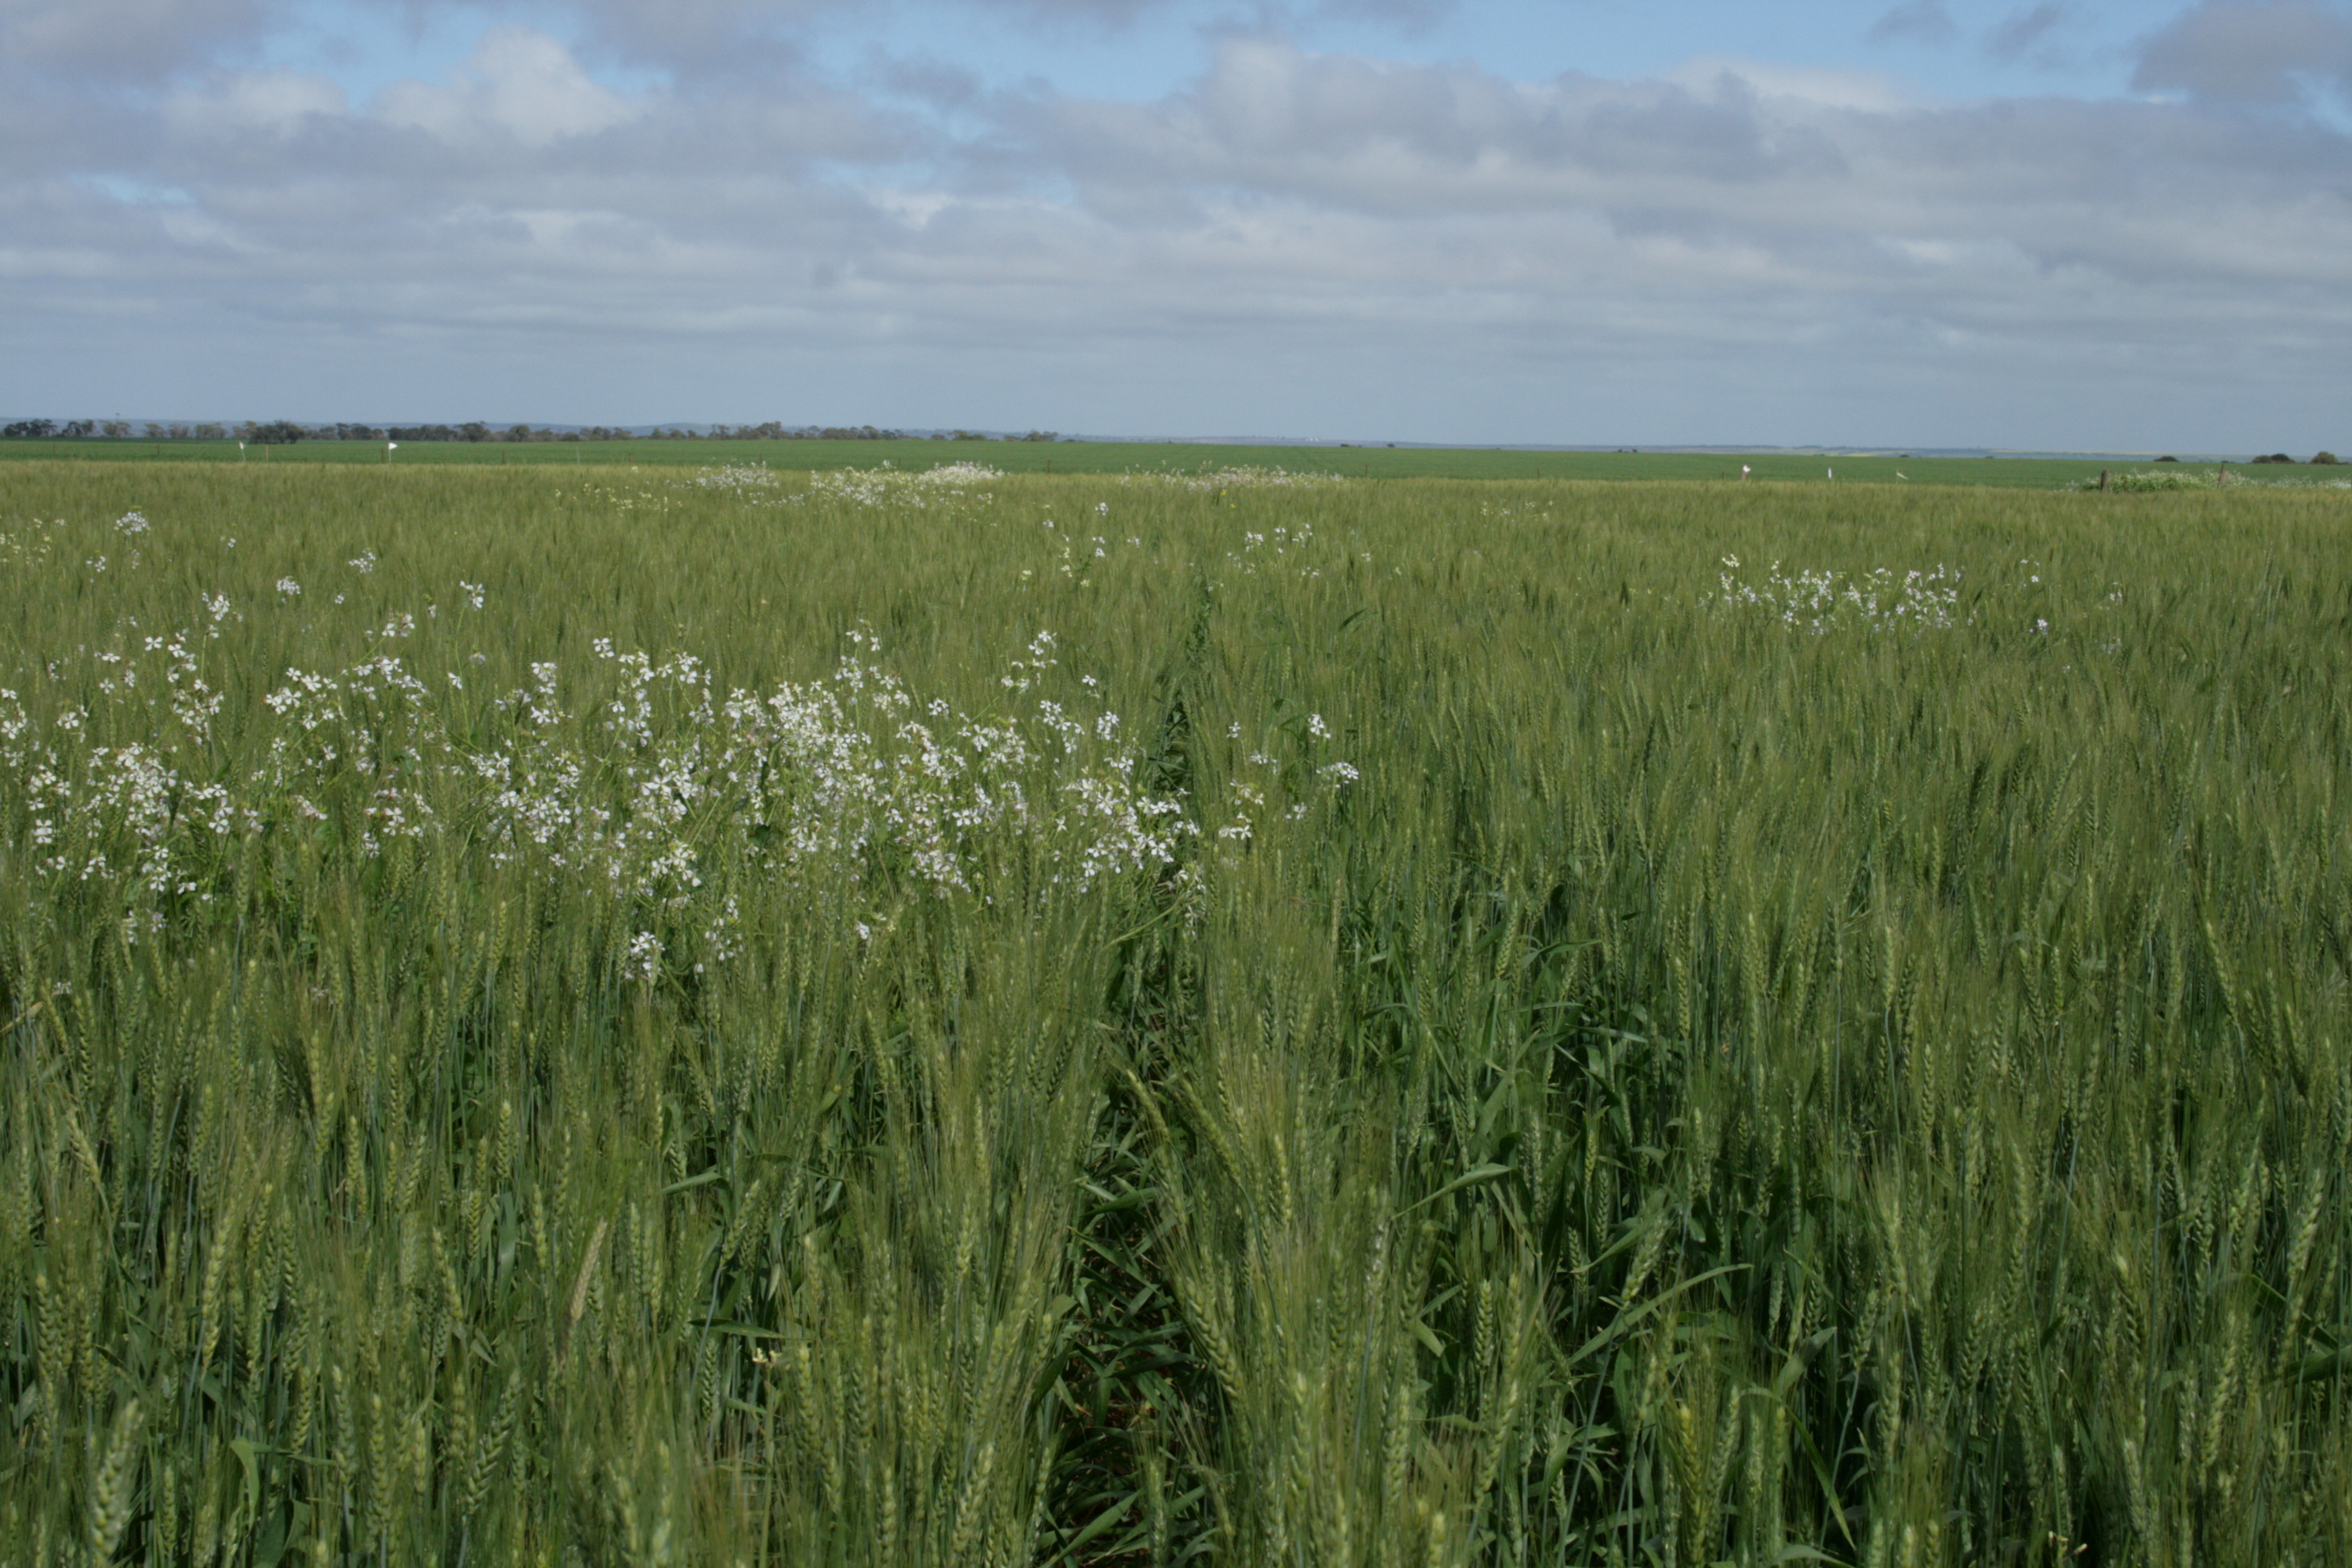 Image of wild radish in growing within a crop of wheat